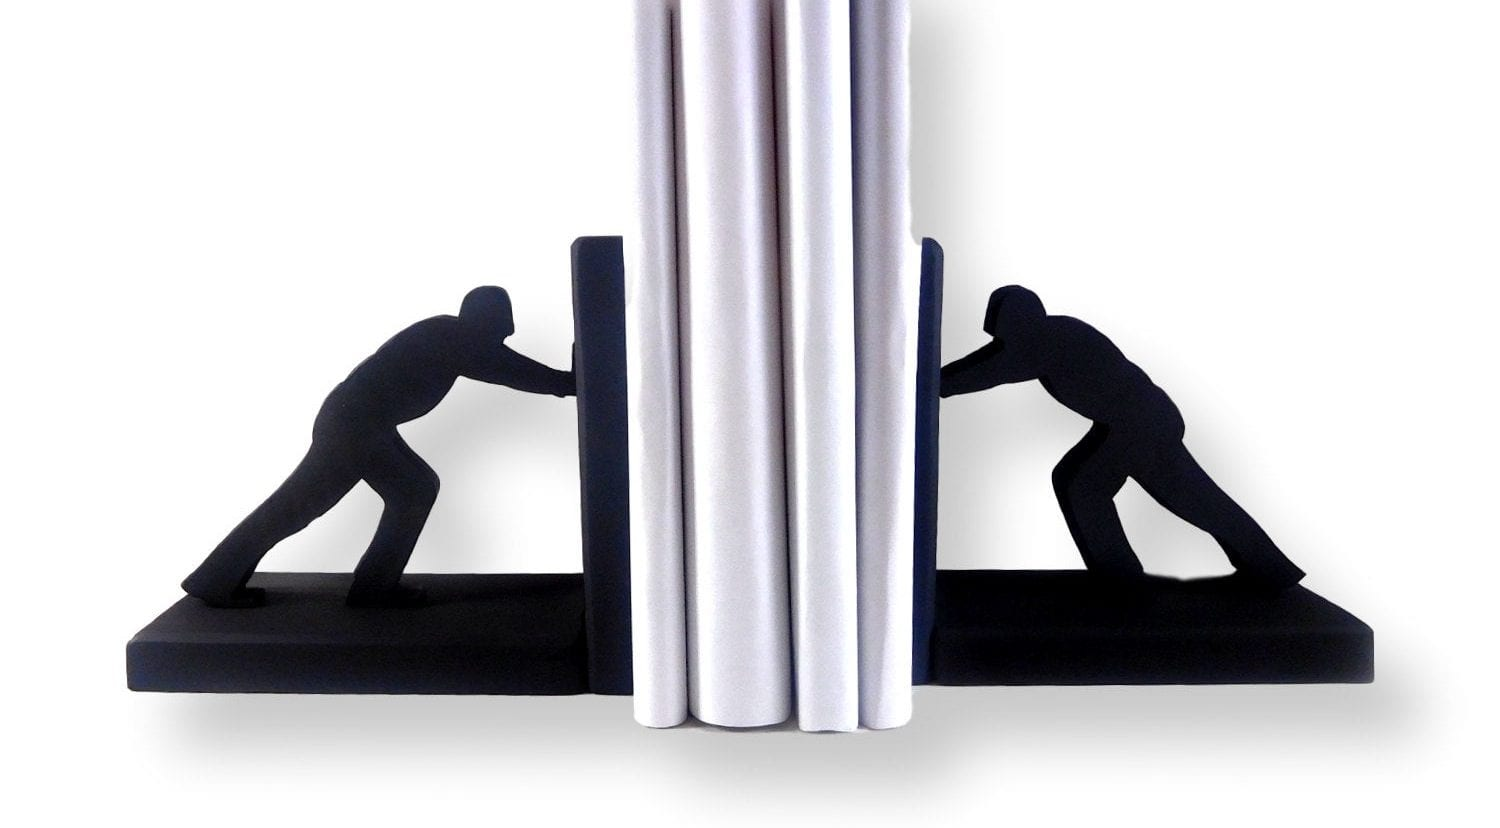 Tinker Zone: Silhouette Bookends